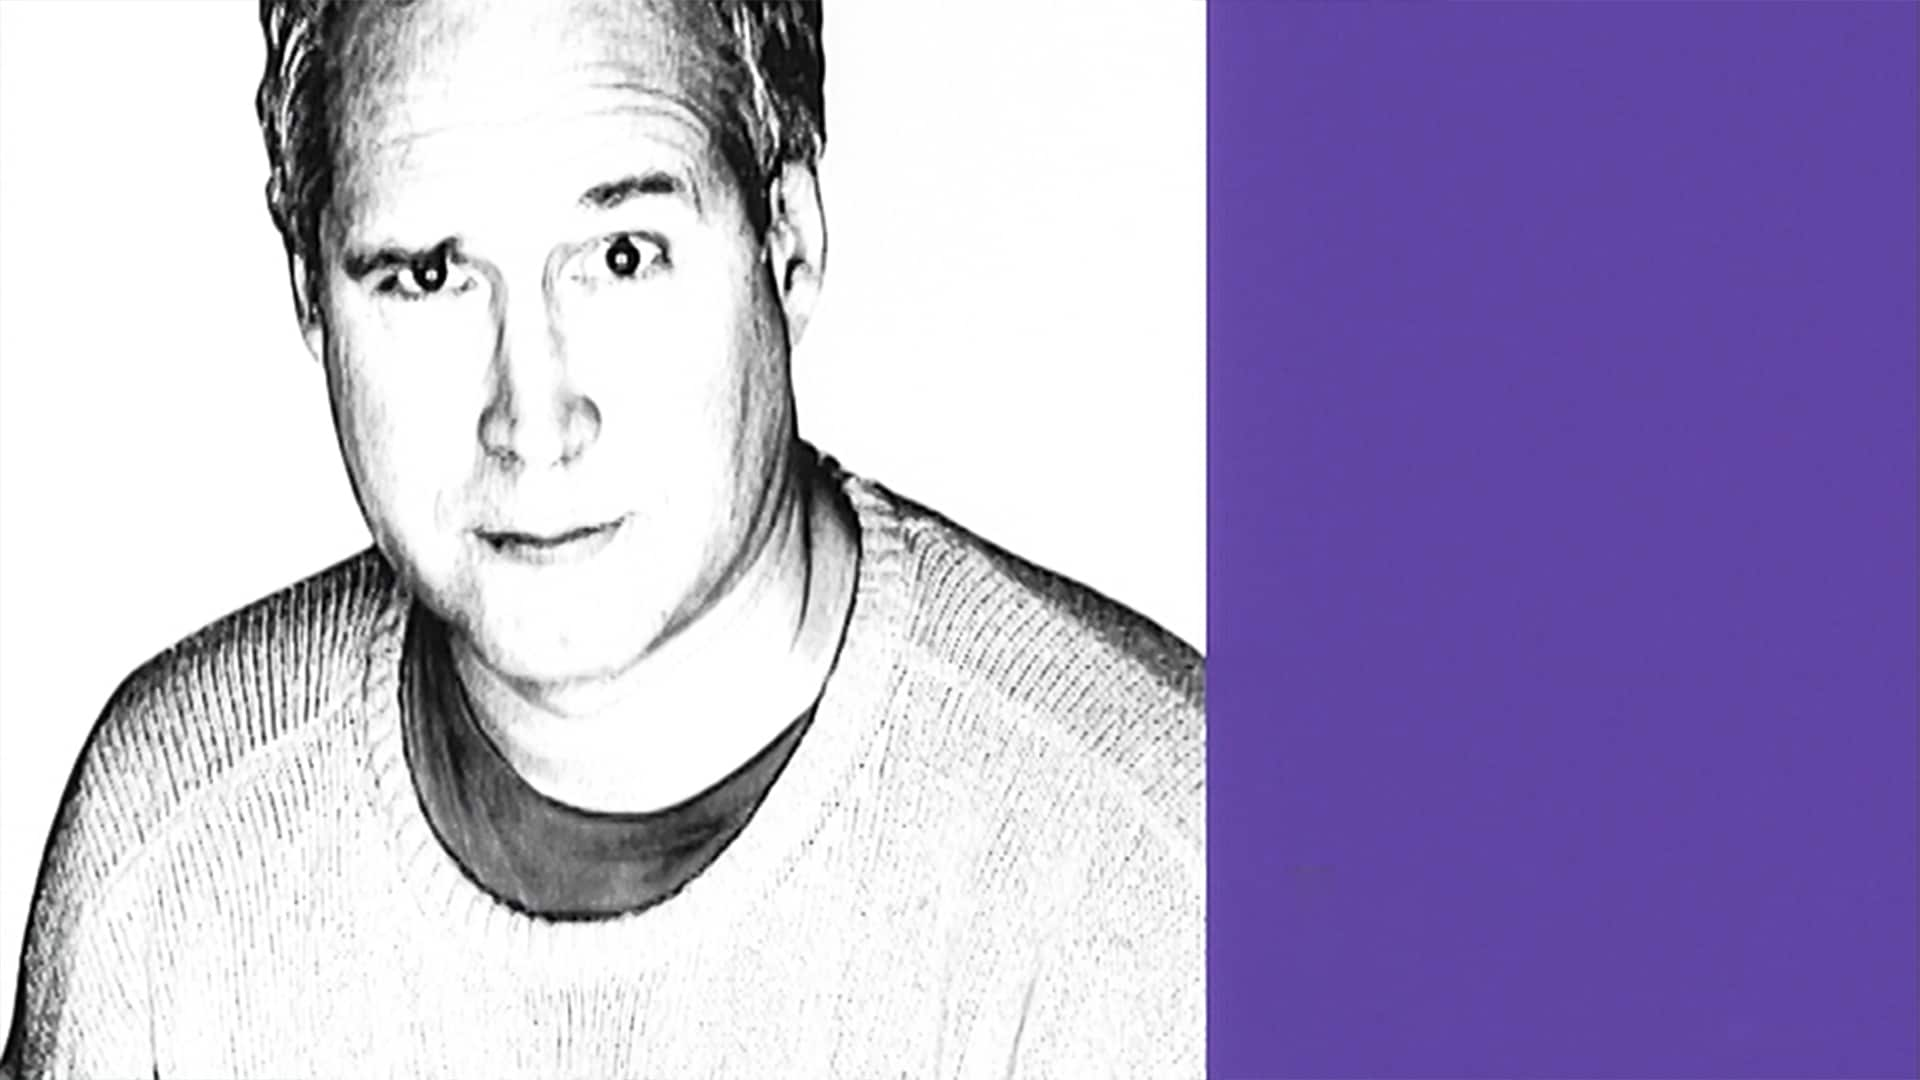 Chevy Chase: October 7, 1995